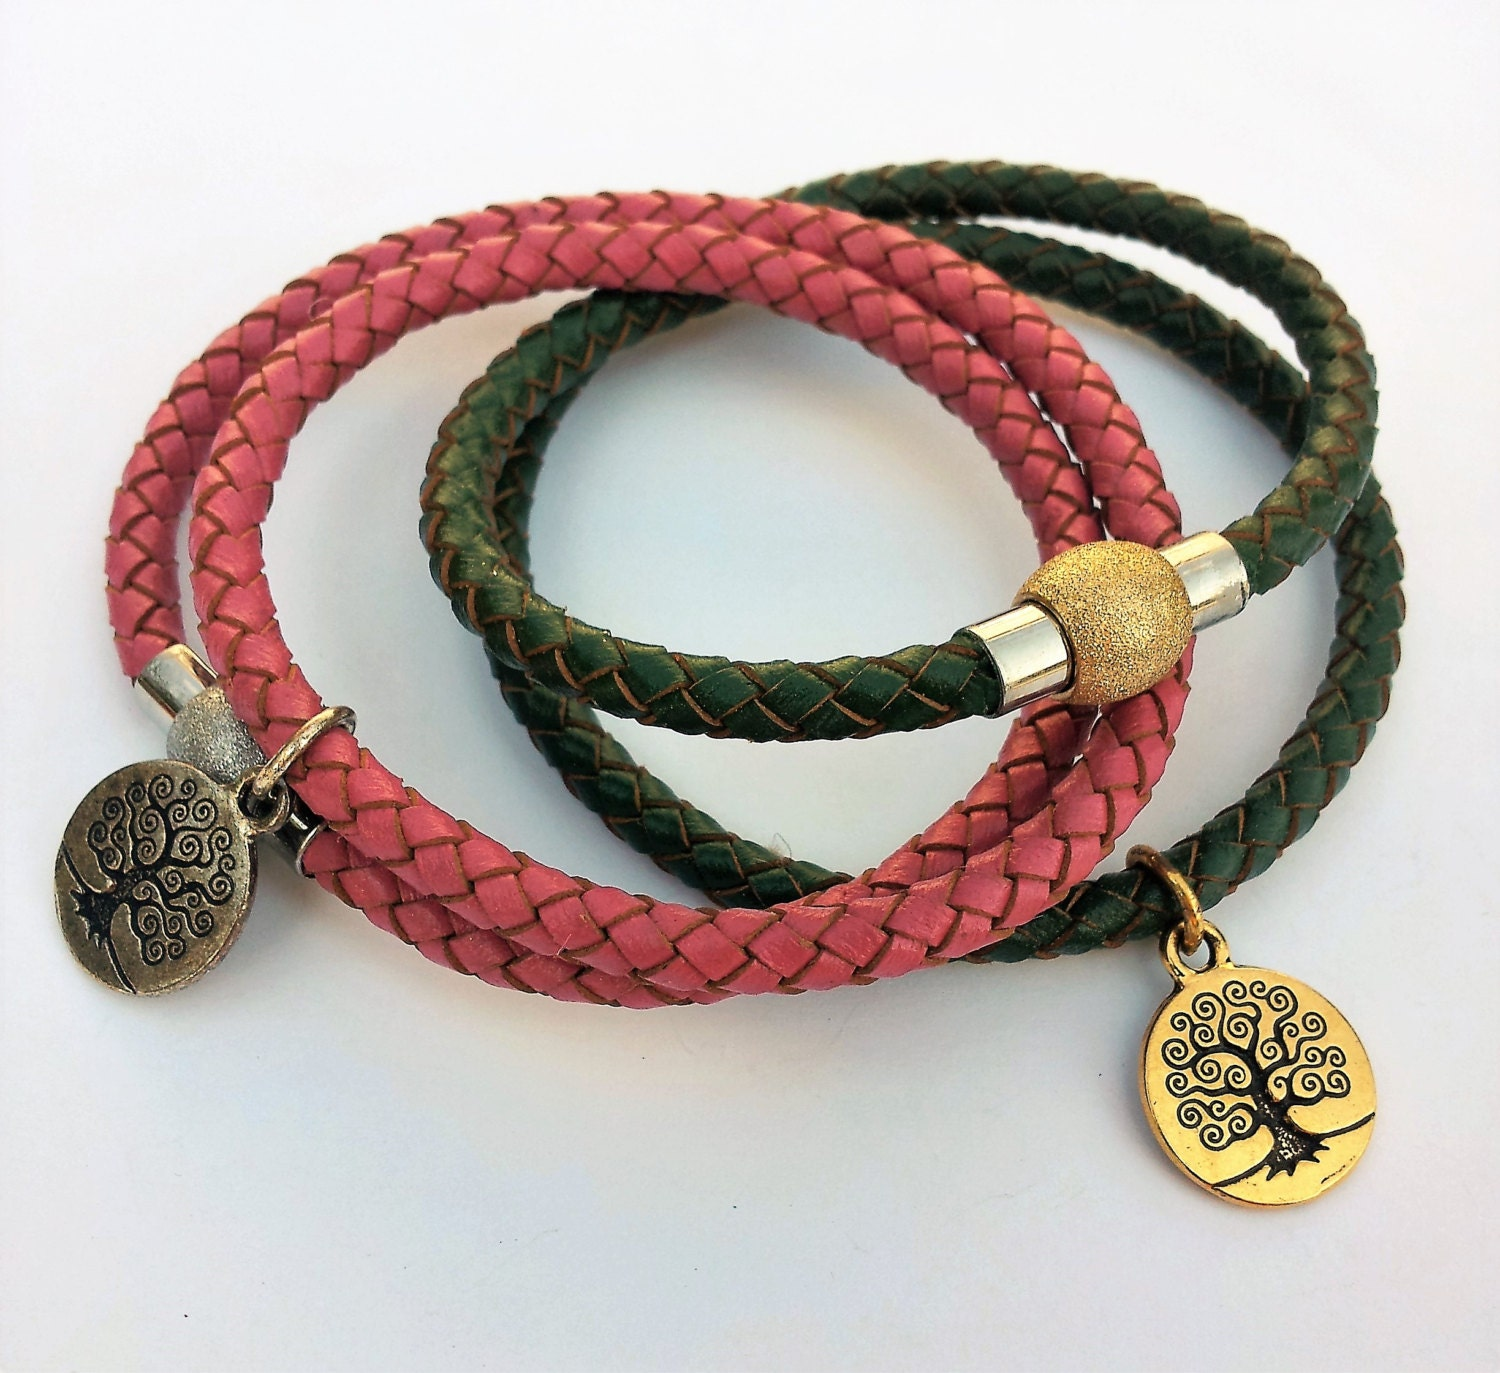 Leather Bracelet With Charms: Leather Bracelet Teen Jewelry Boho Bracelet Charm